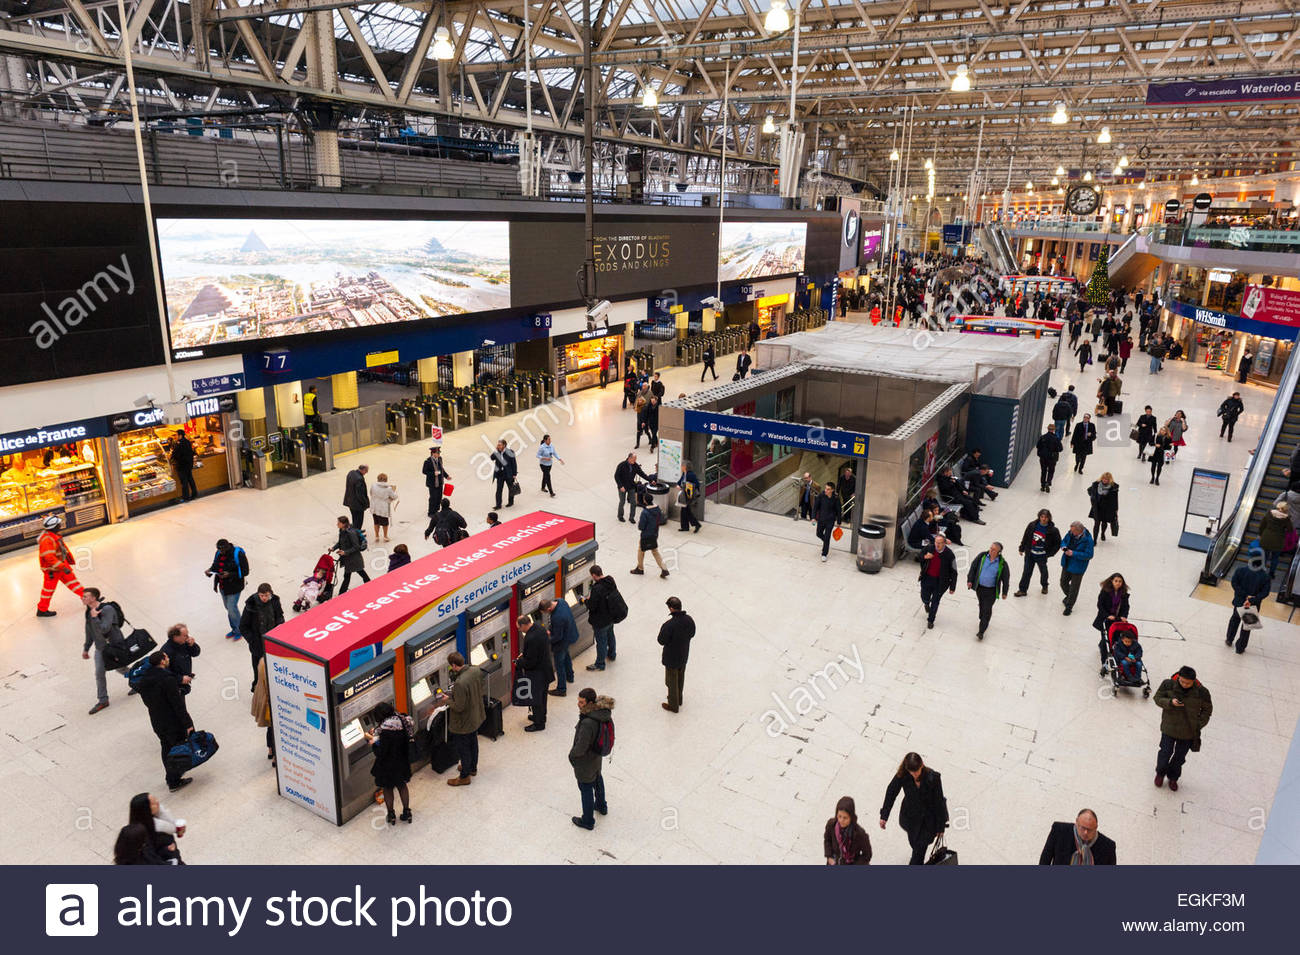 The new concourse at Waterloo station London - Stock Image